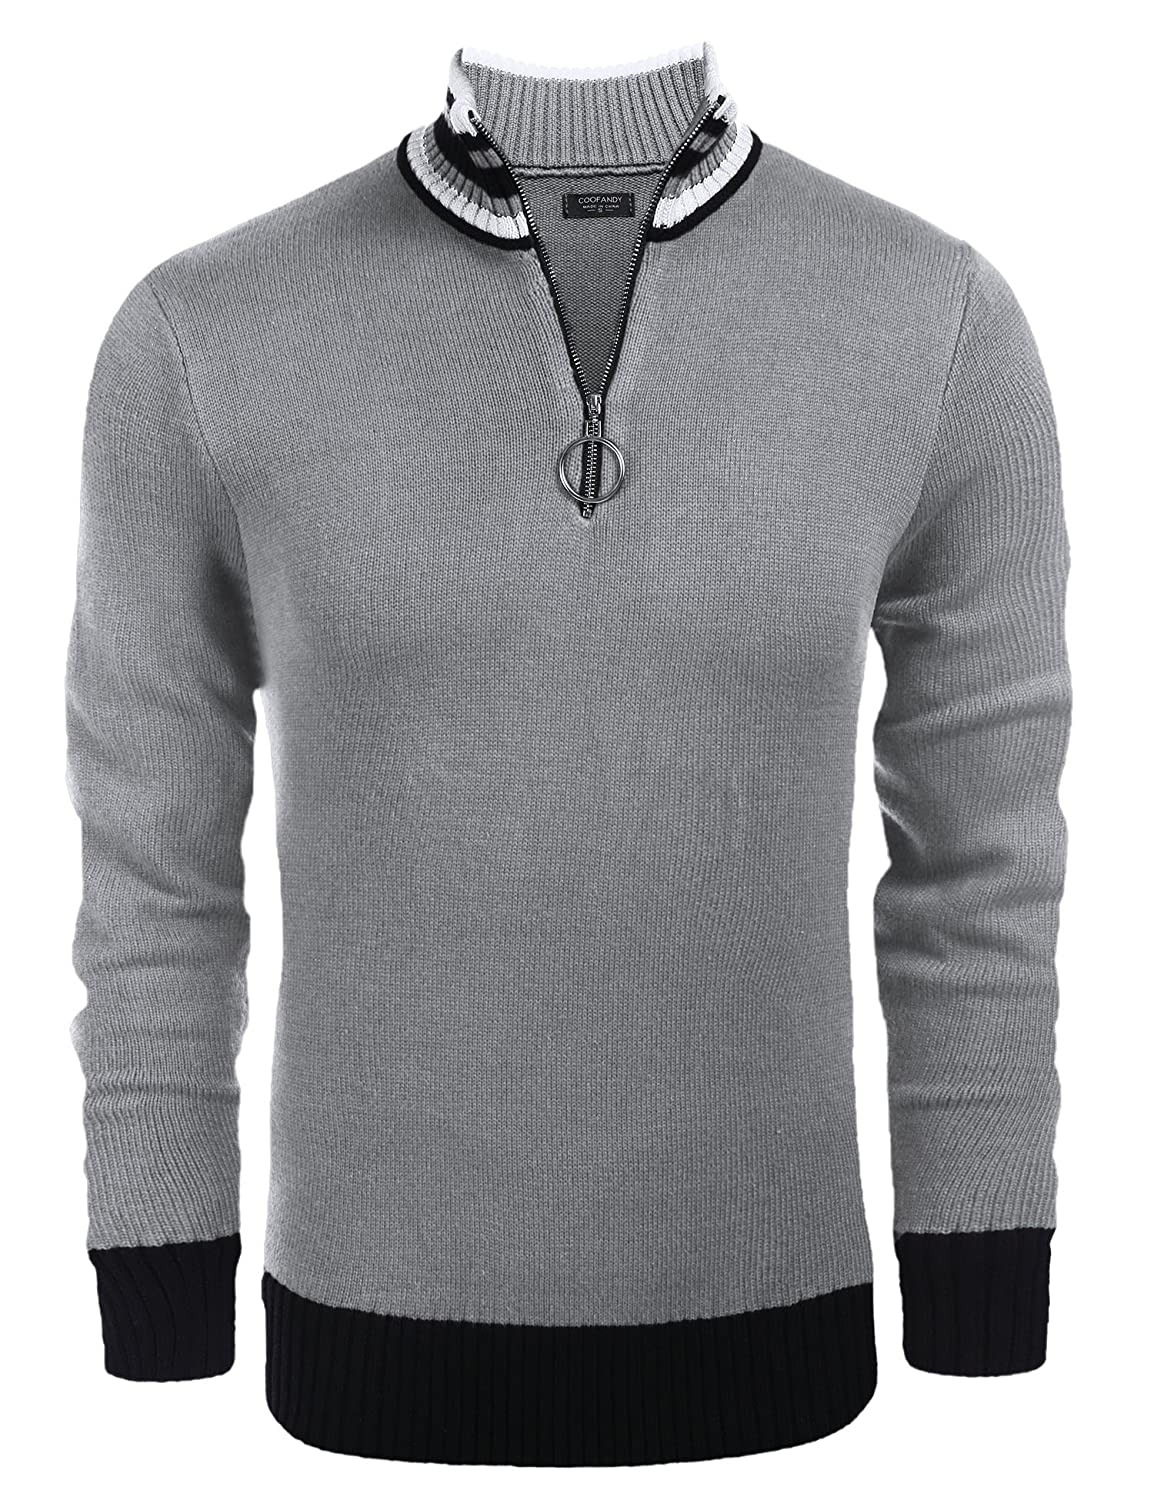 5749a0fdd COOFANDY Men's Casual Quarter Zip Pullover Sweater Slim Fit Long Sleeve  Polo Sweaters at Amazon Men's Clothing store: